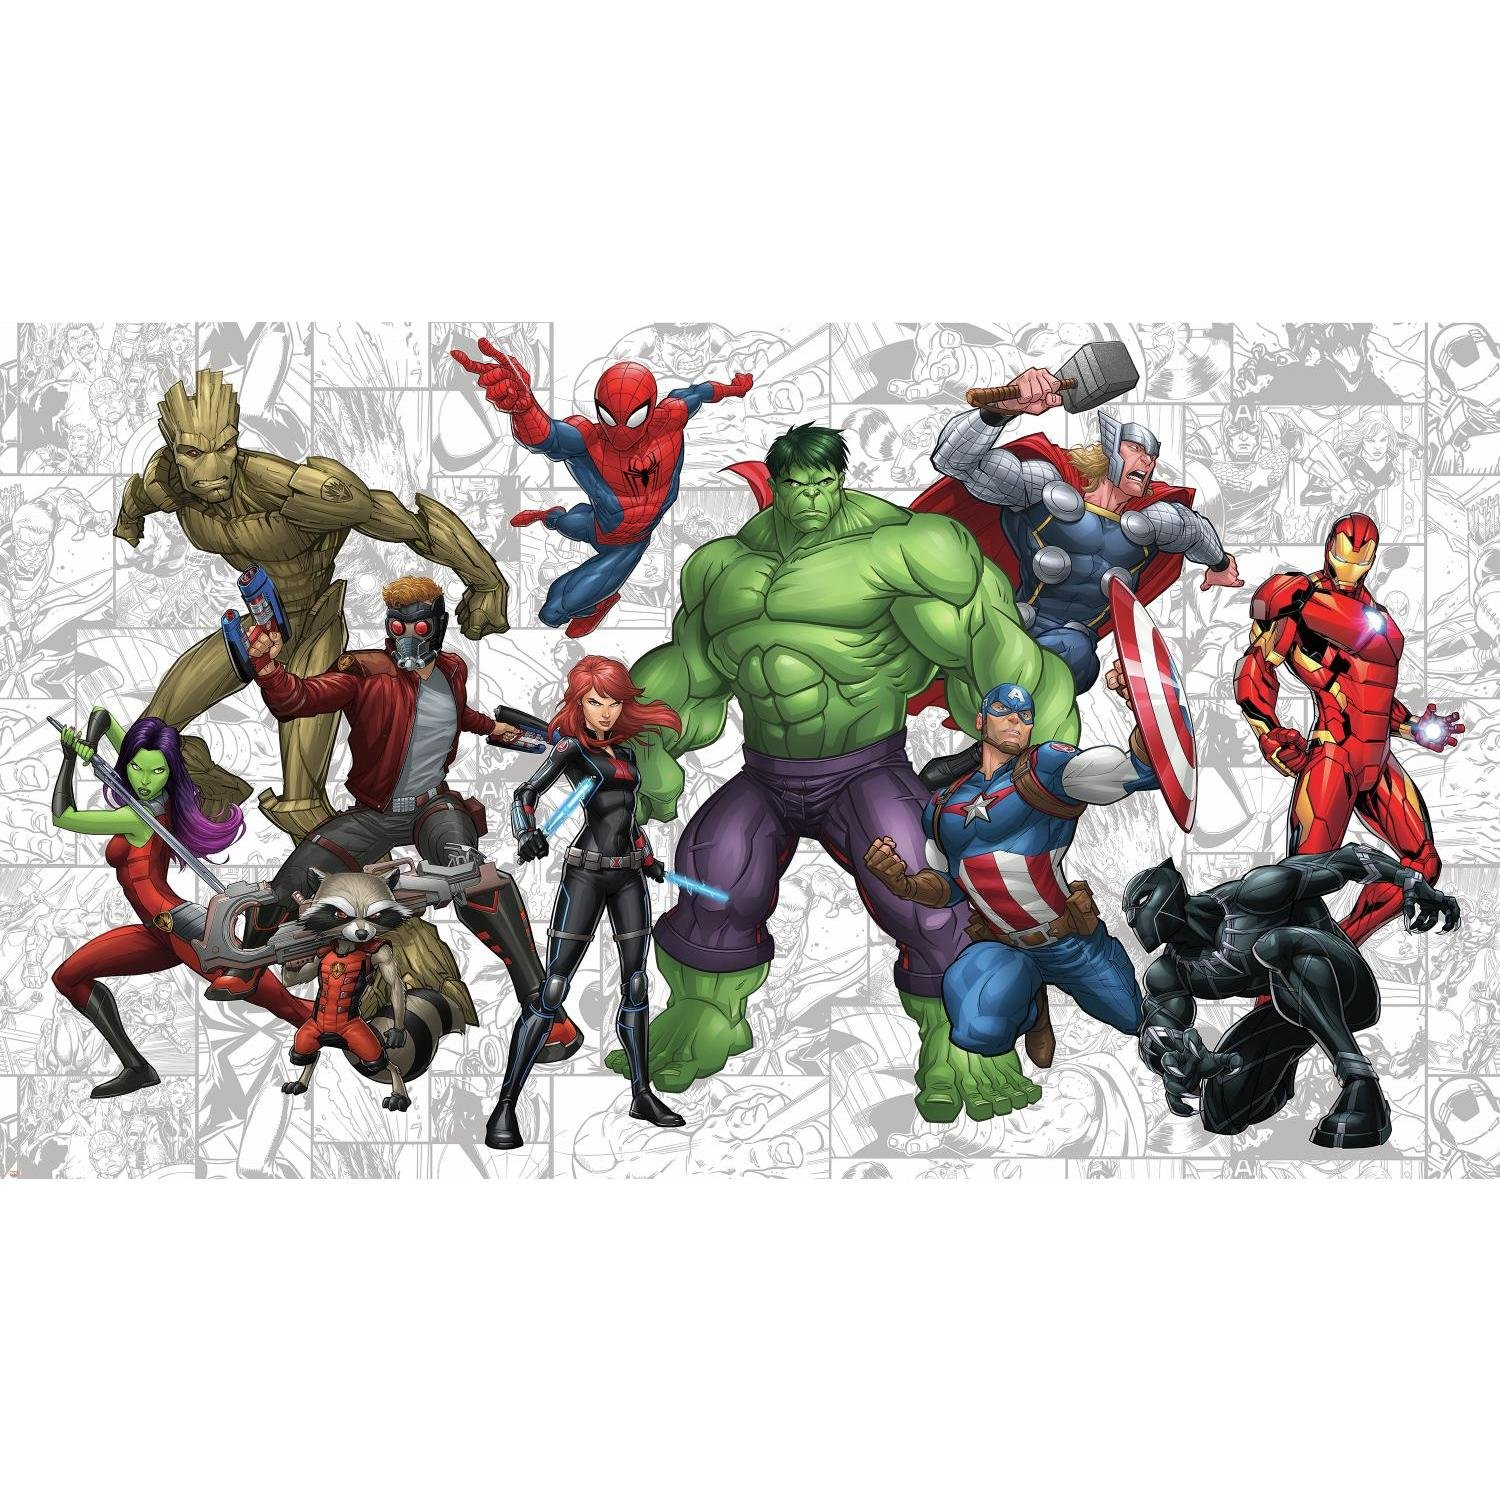 RoomMates Marvel Hero Prepasted, Removable Wall Mural - 6' X 10.5' by RoomMates (Image #2)